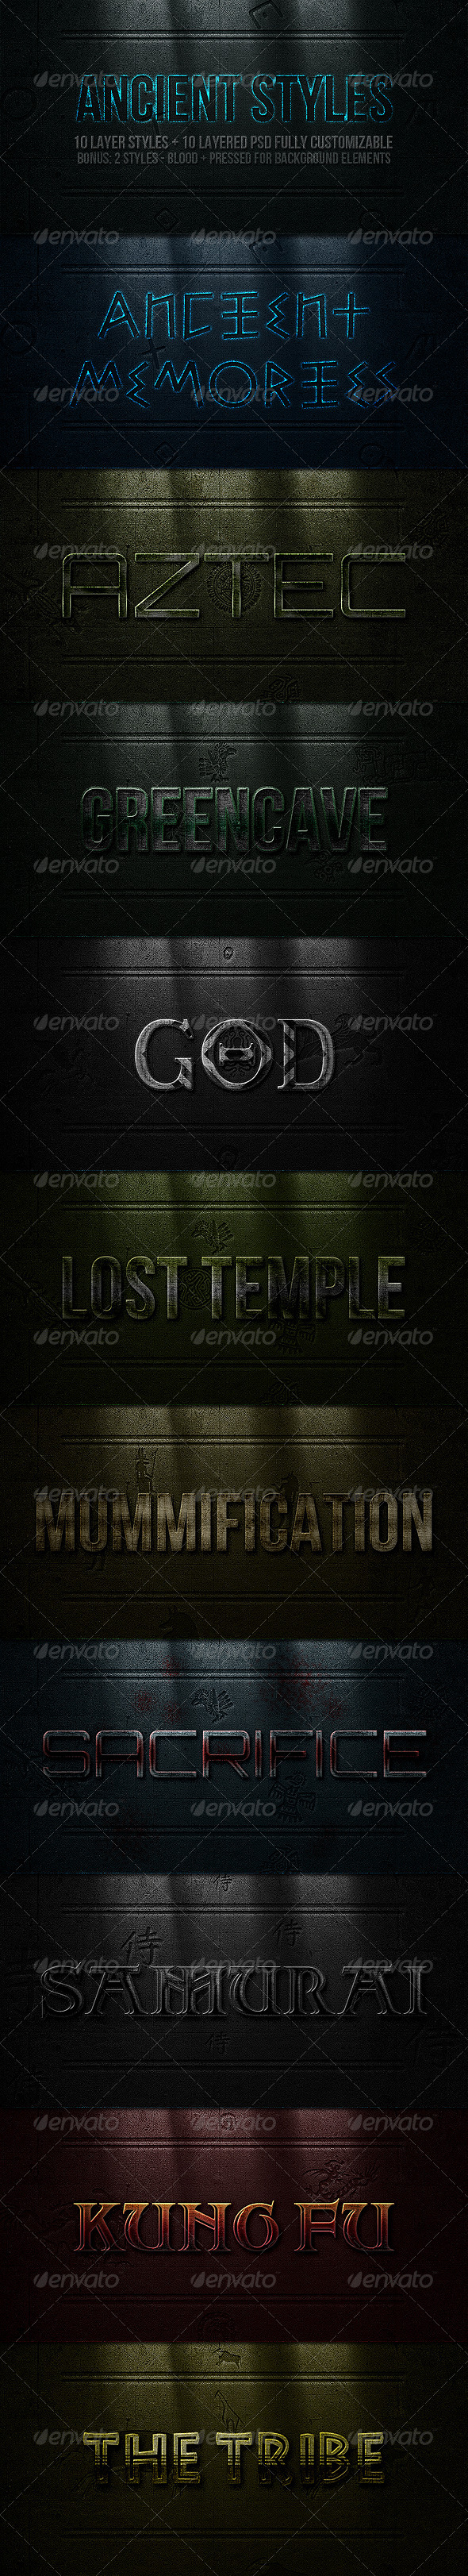 GraphicRiver Ancient Styles 1929611